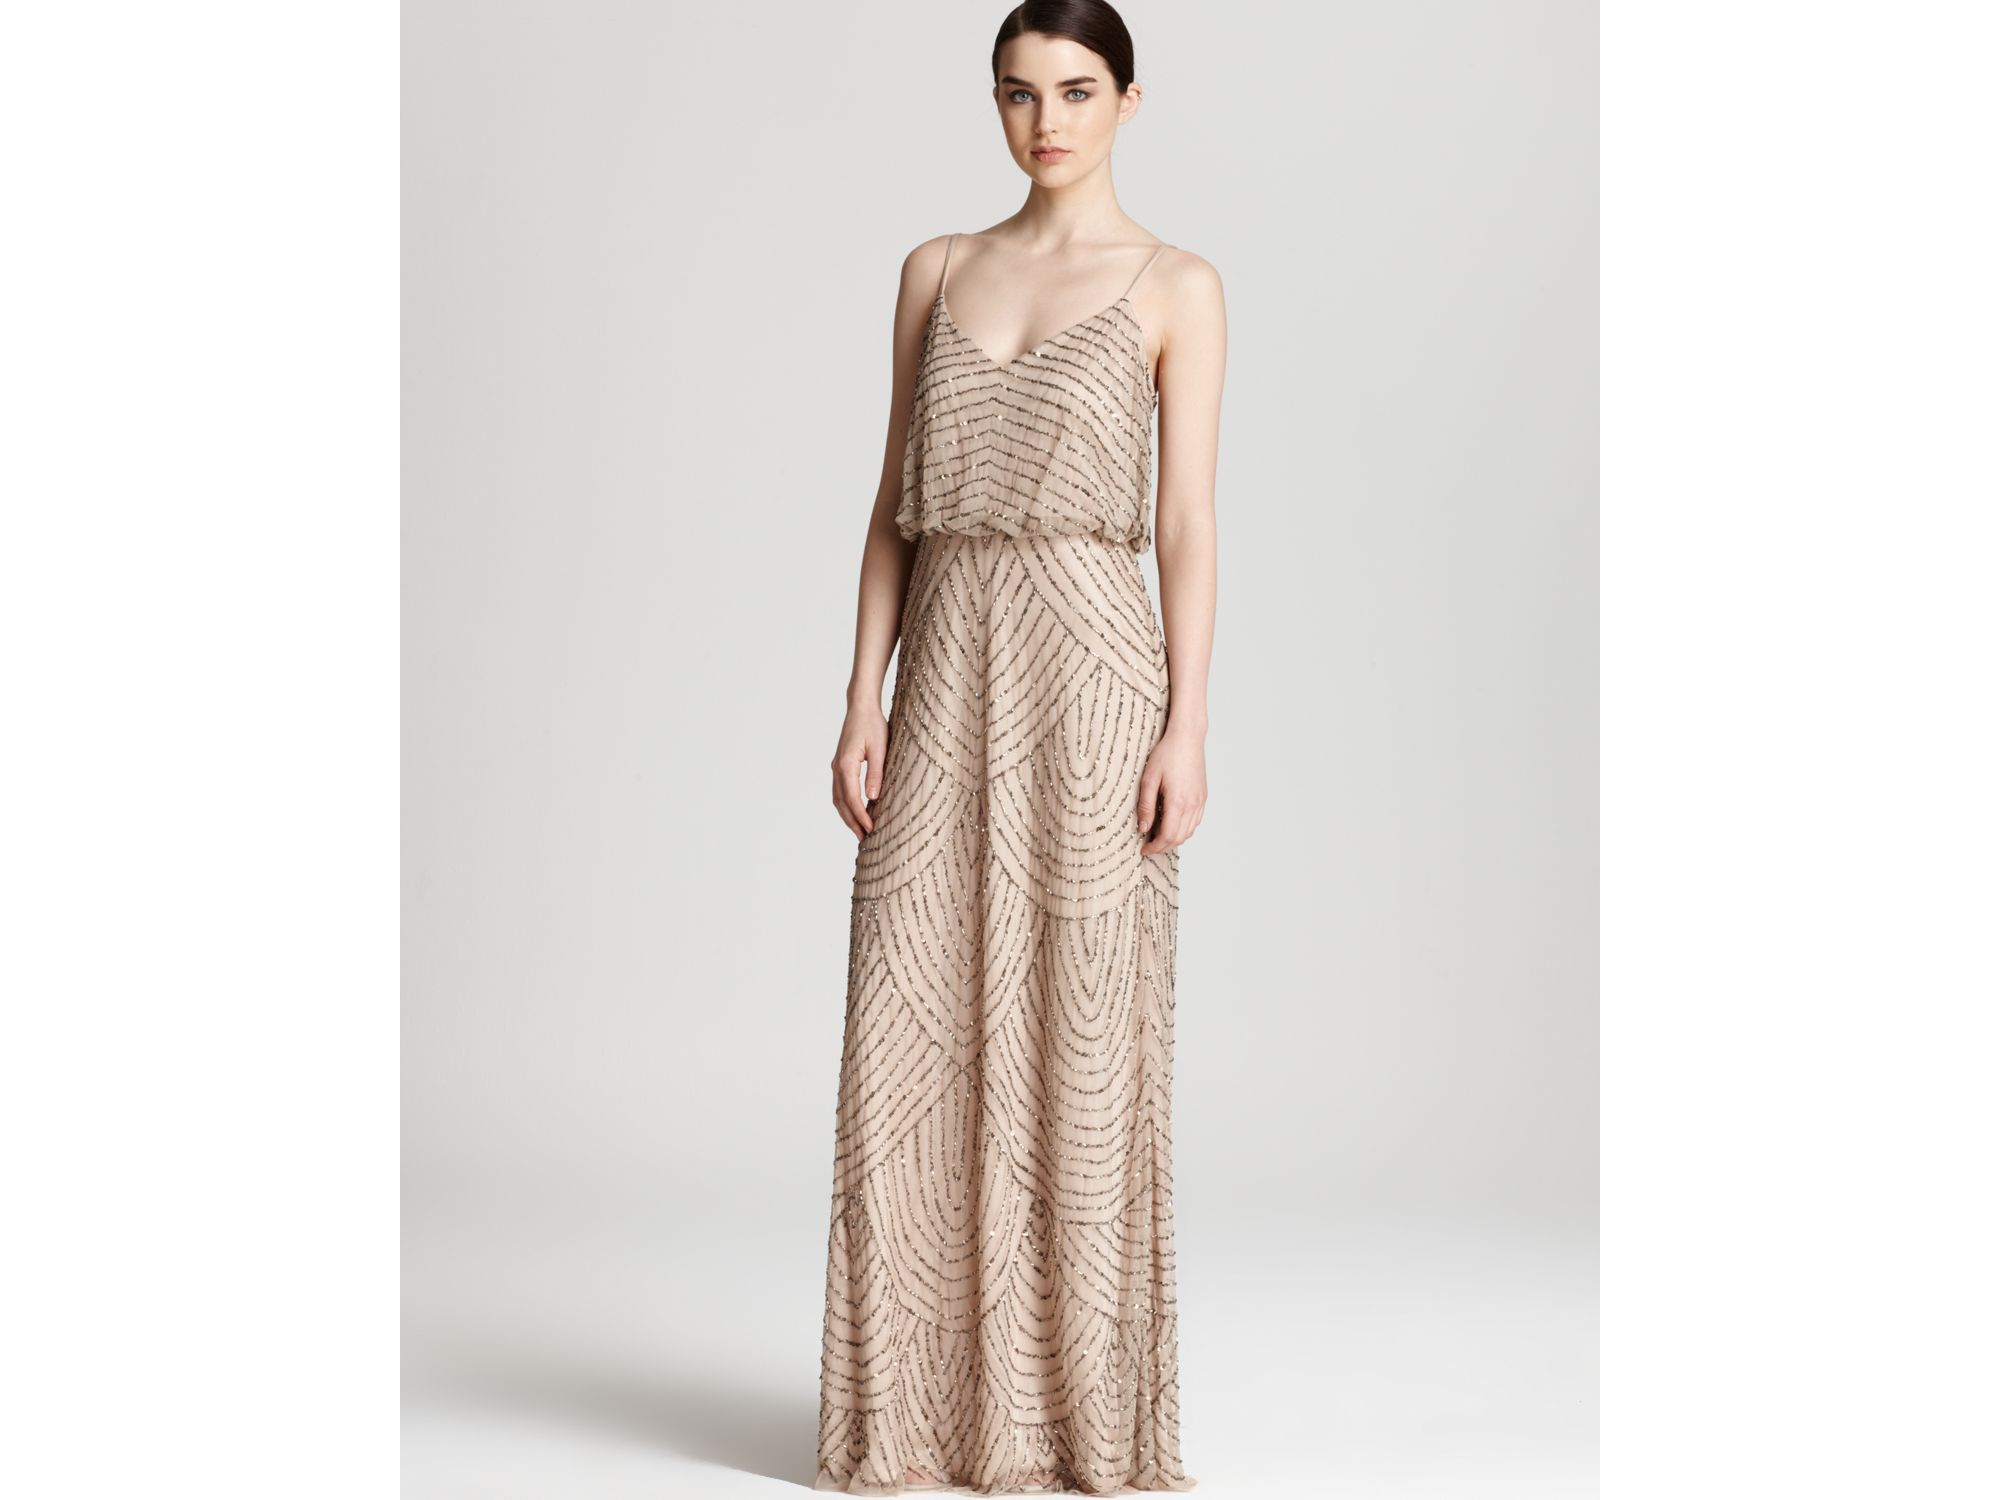 Lyst - Adrianna Papell Beaded Dress Long Blouson in Pink